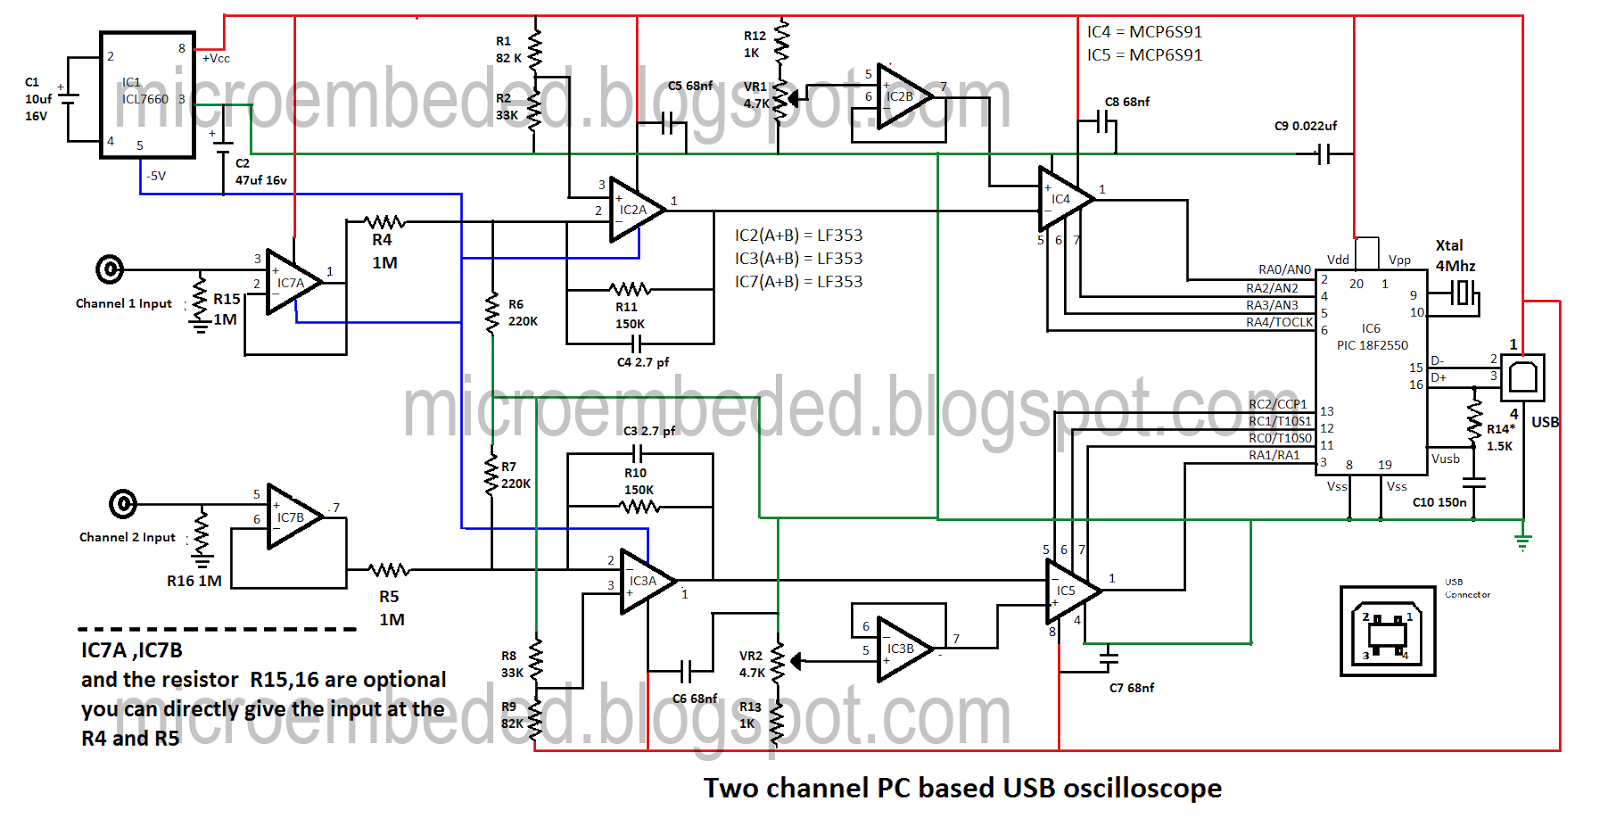 embedded engineering two channel pc based oscilloscope usbusb oscilloscope schematic 6 [ 1600 x 835 Pixel ]